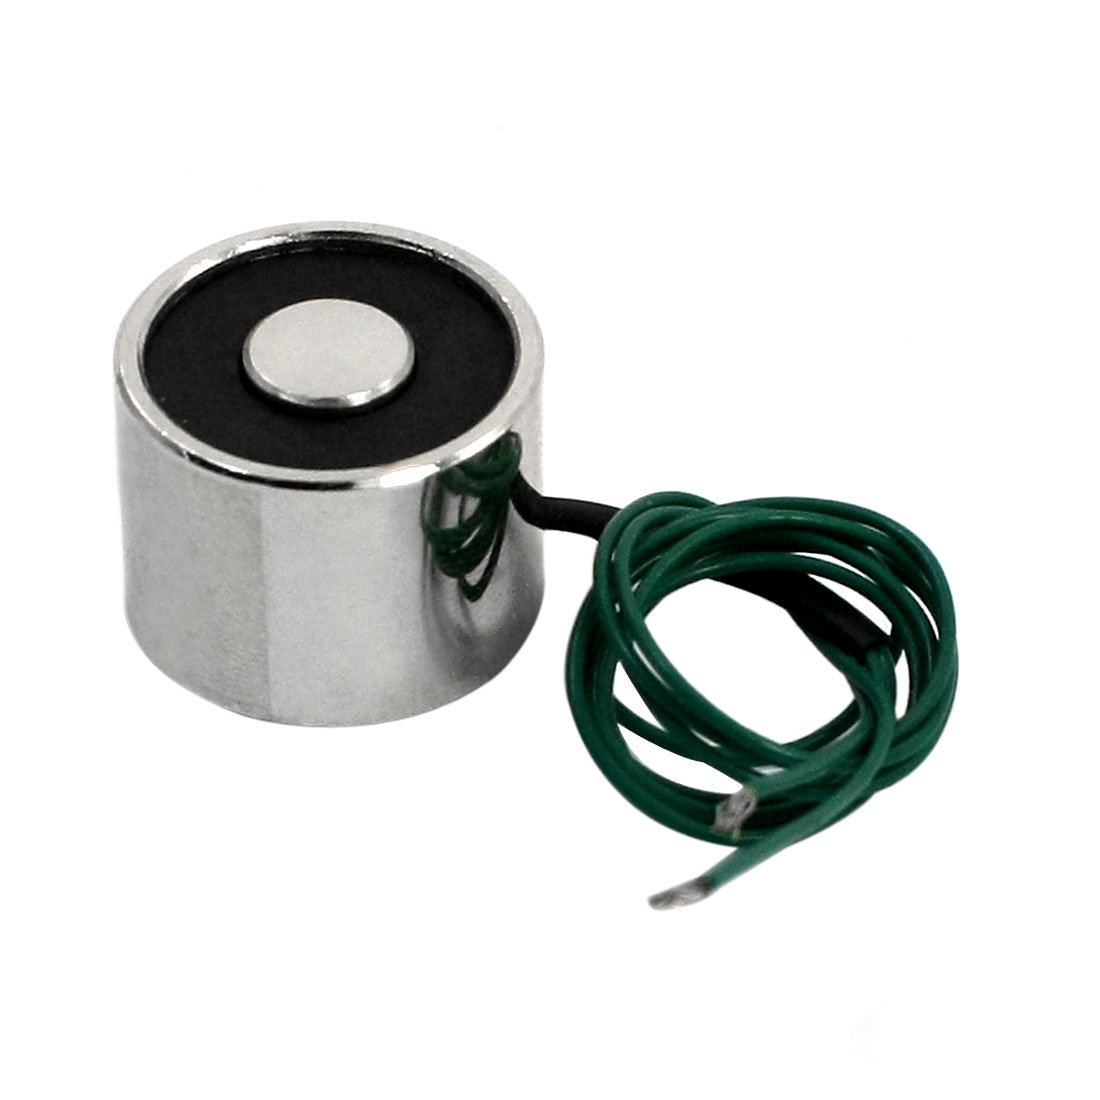 Uxcell 12V 0.24A 2.5Kg 3mm Thread Dia 24cm Two Wires Electric Lifting Magnet Electromagnet Solenoid 20x15mm Green Wire Leads